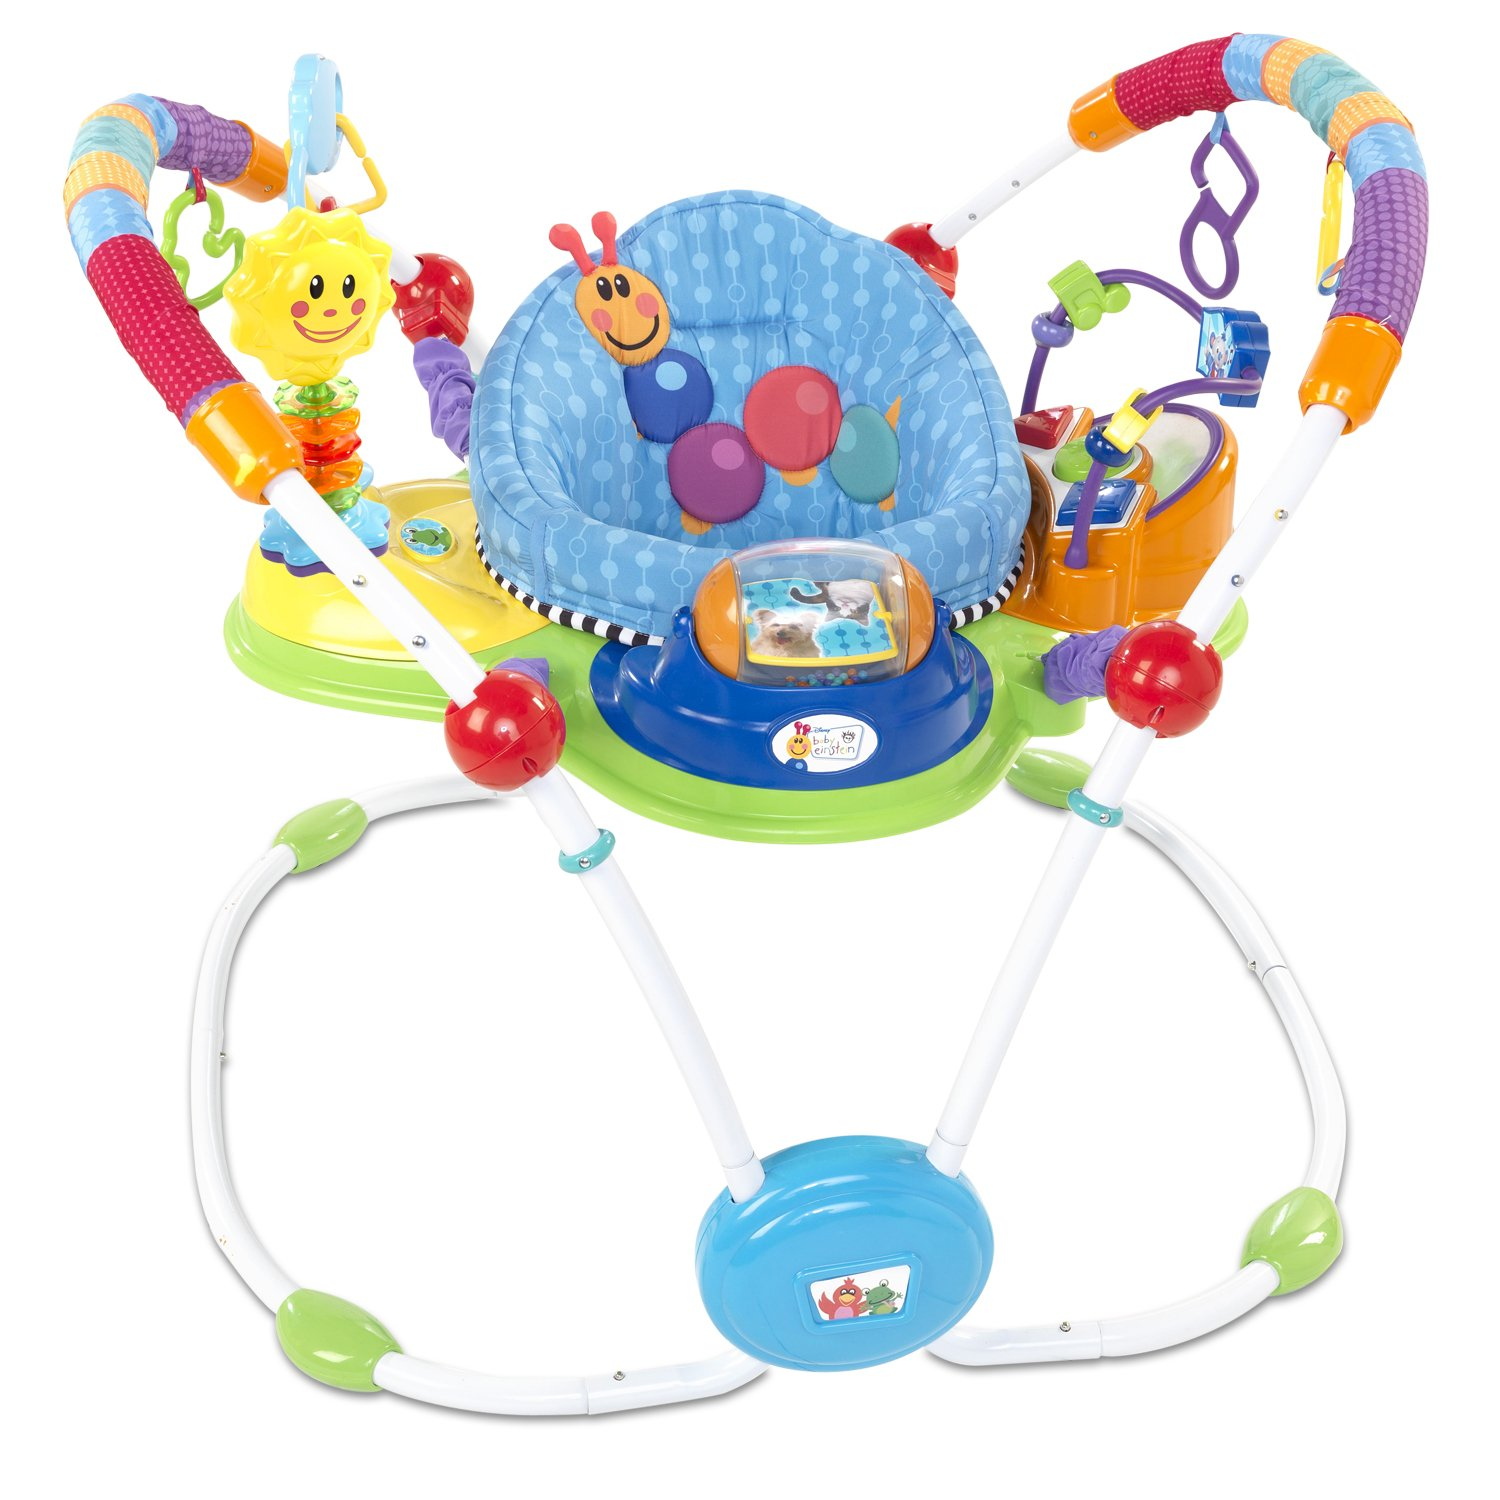 4295aae4c Amazon.com  Baby Einstein Musical Motion Activity Jumper